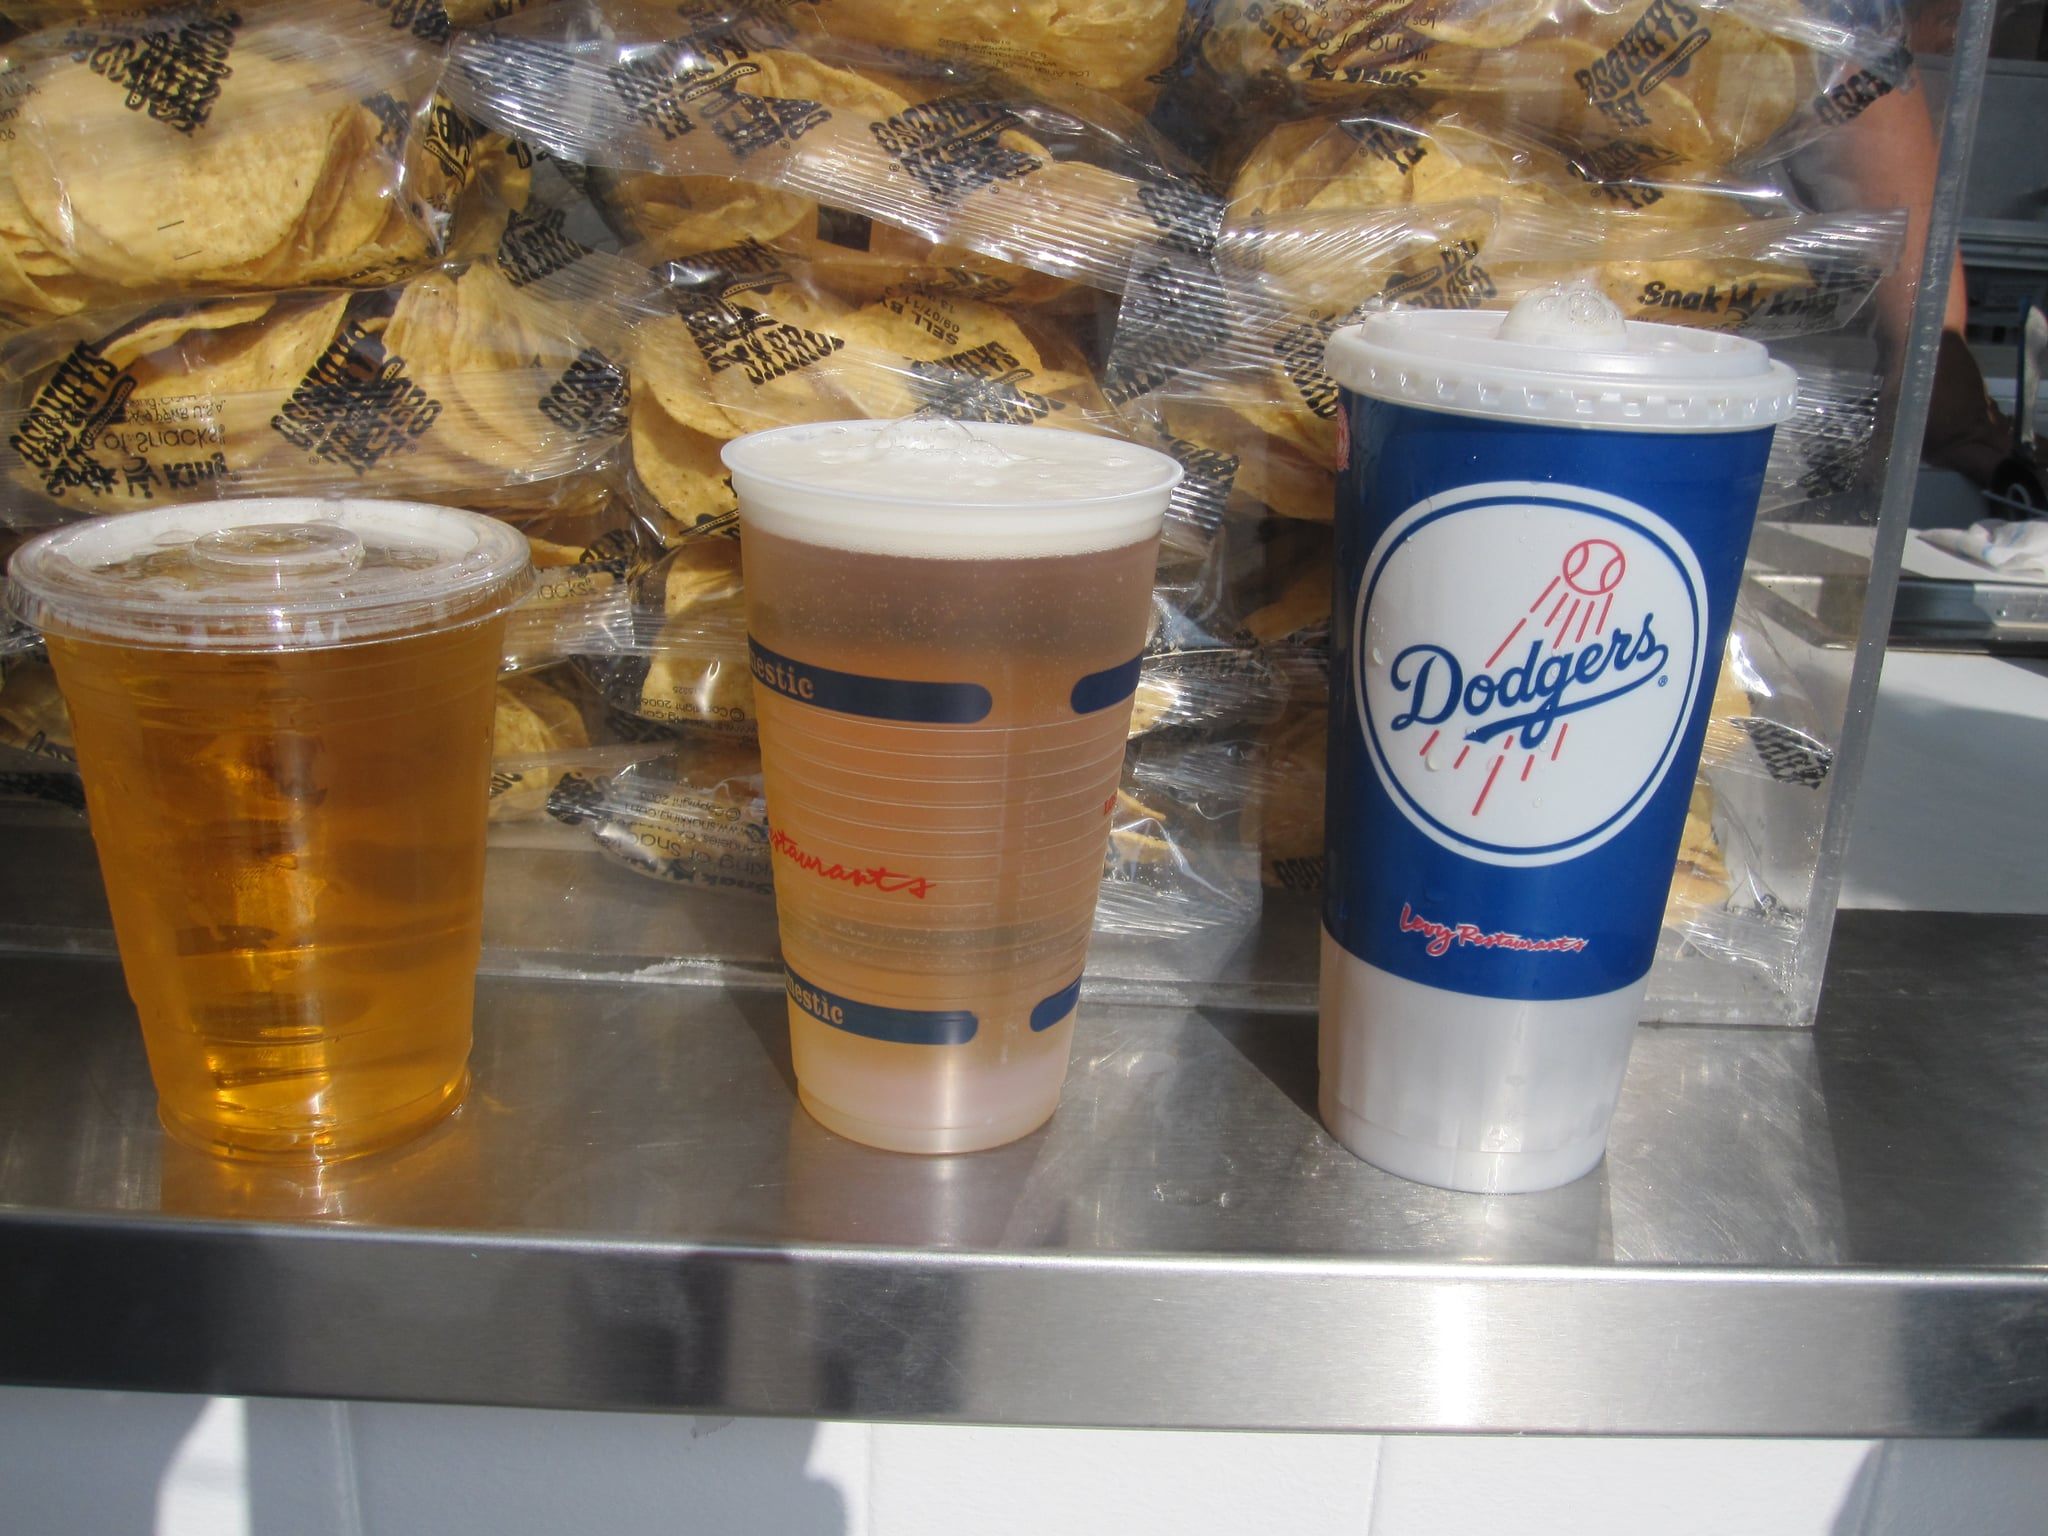 The small, regular, and large beers . . . don't look that different.